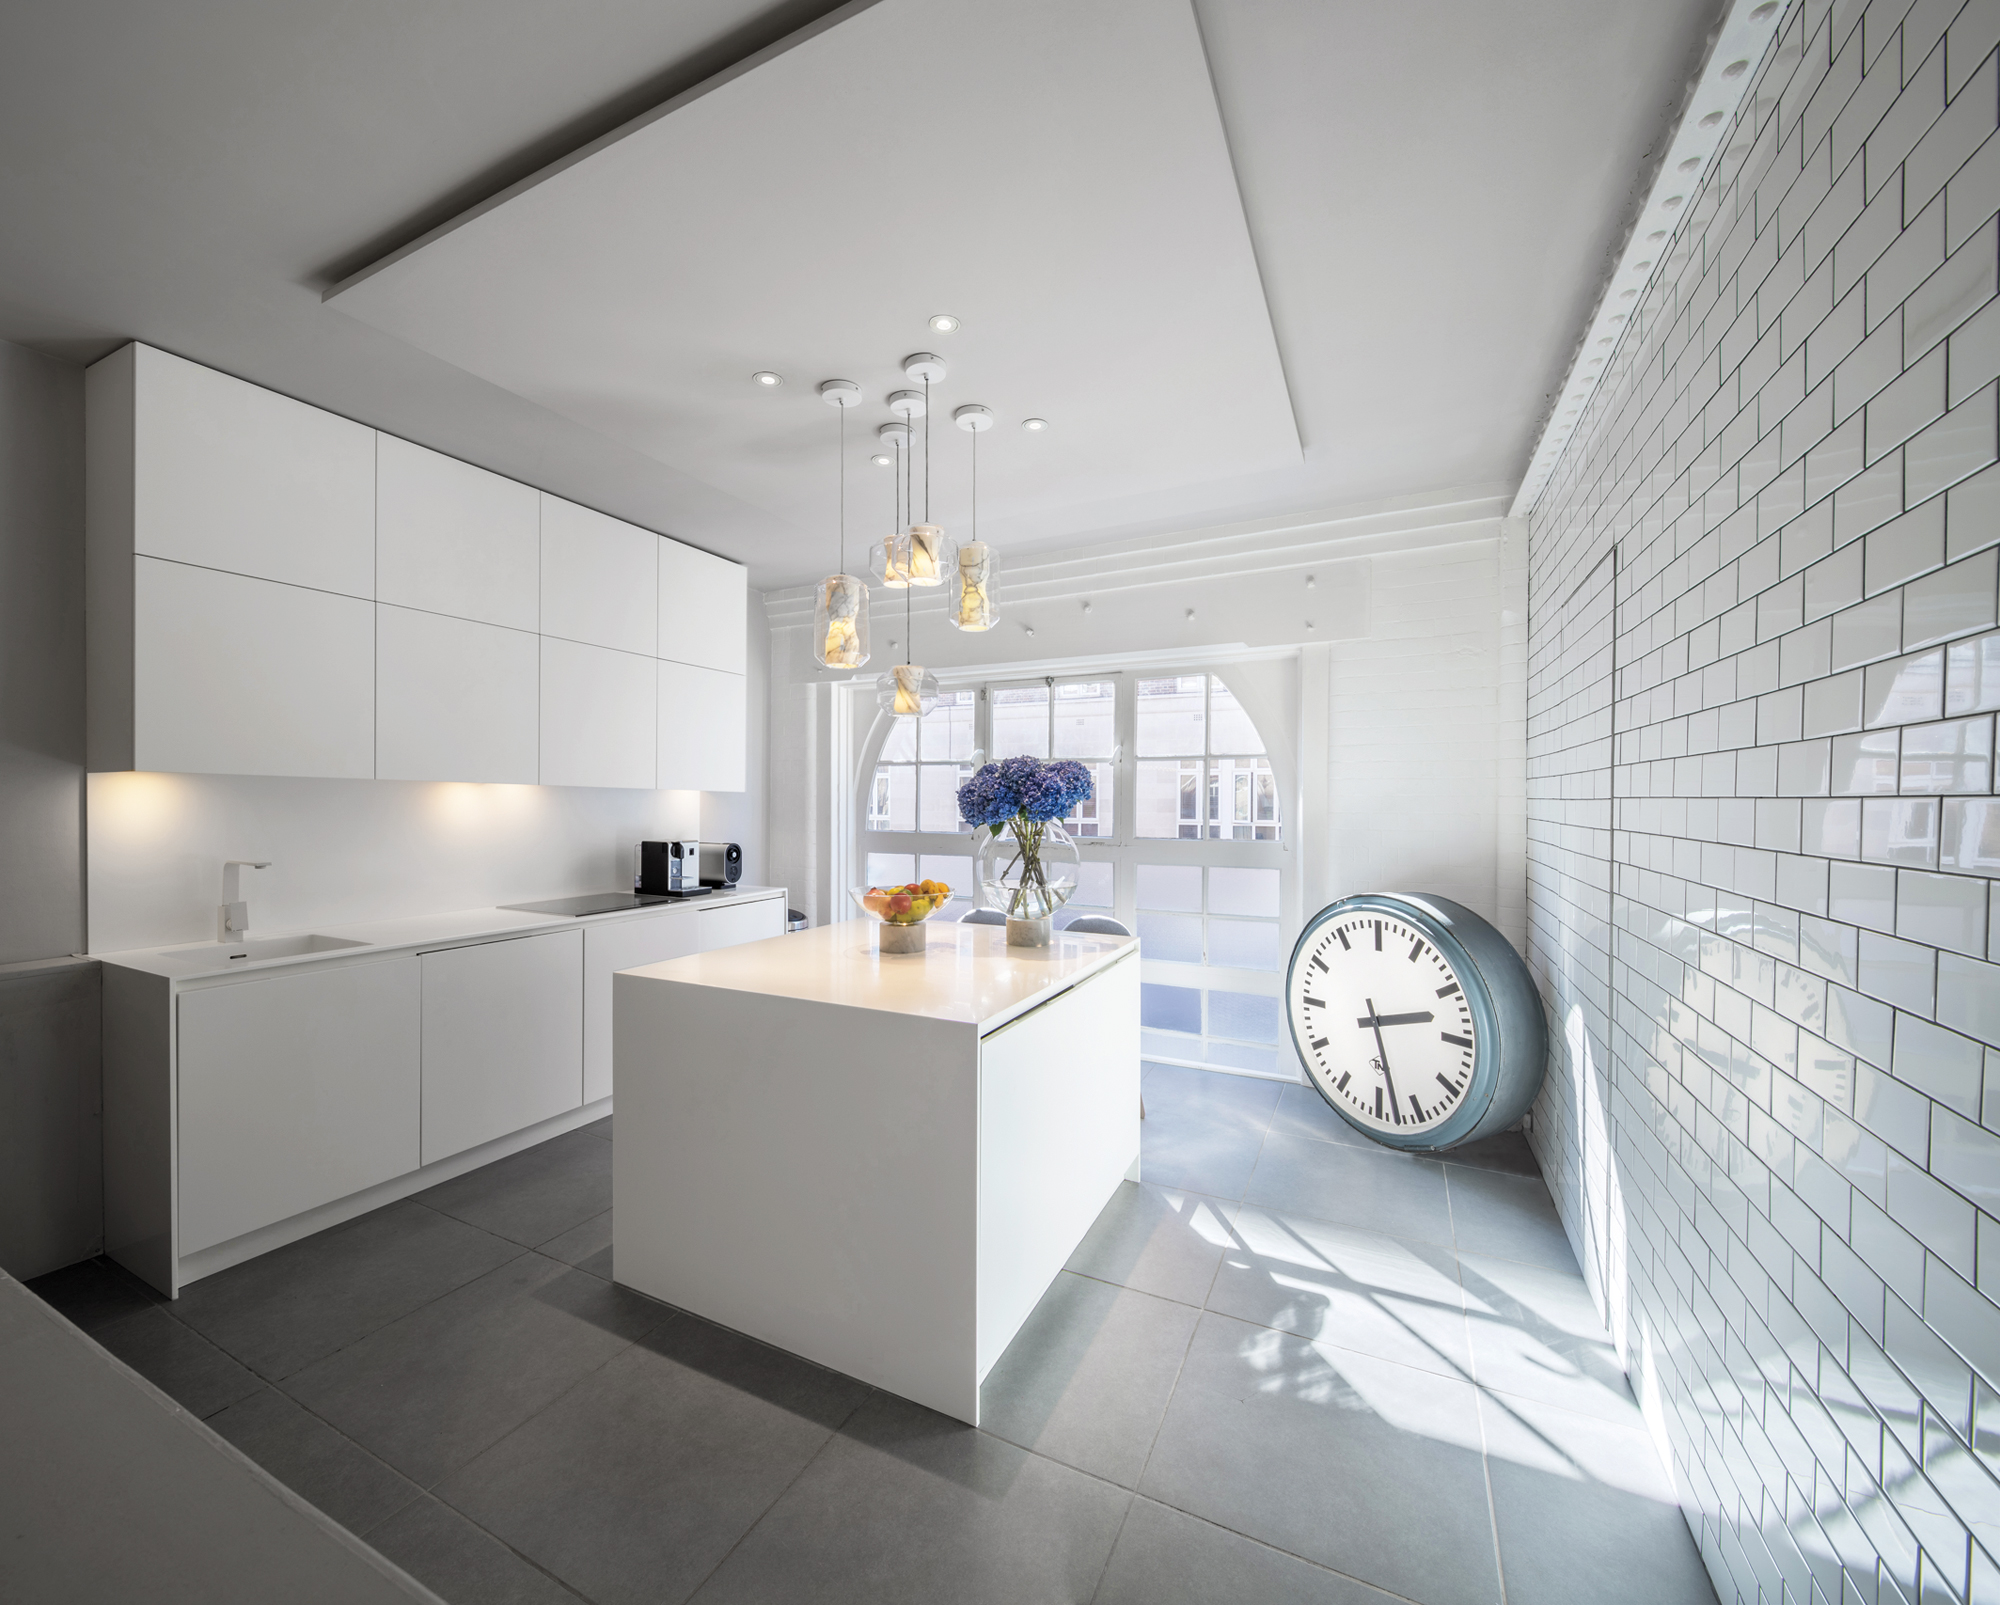 Lee Brooms South London Flat Exemplifies His Design Vision